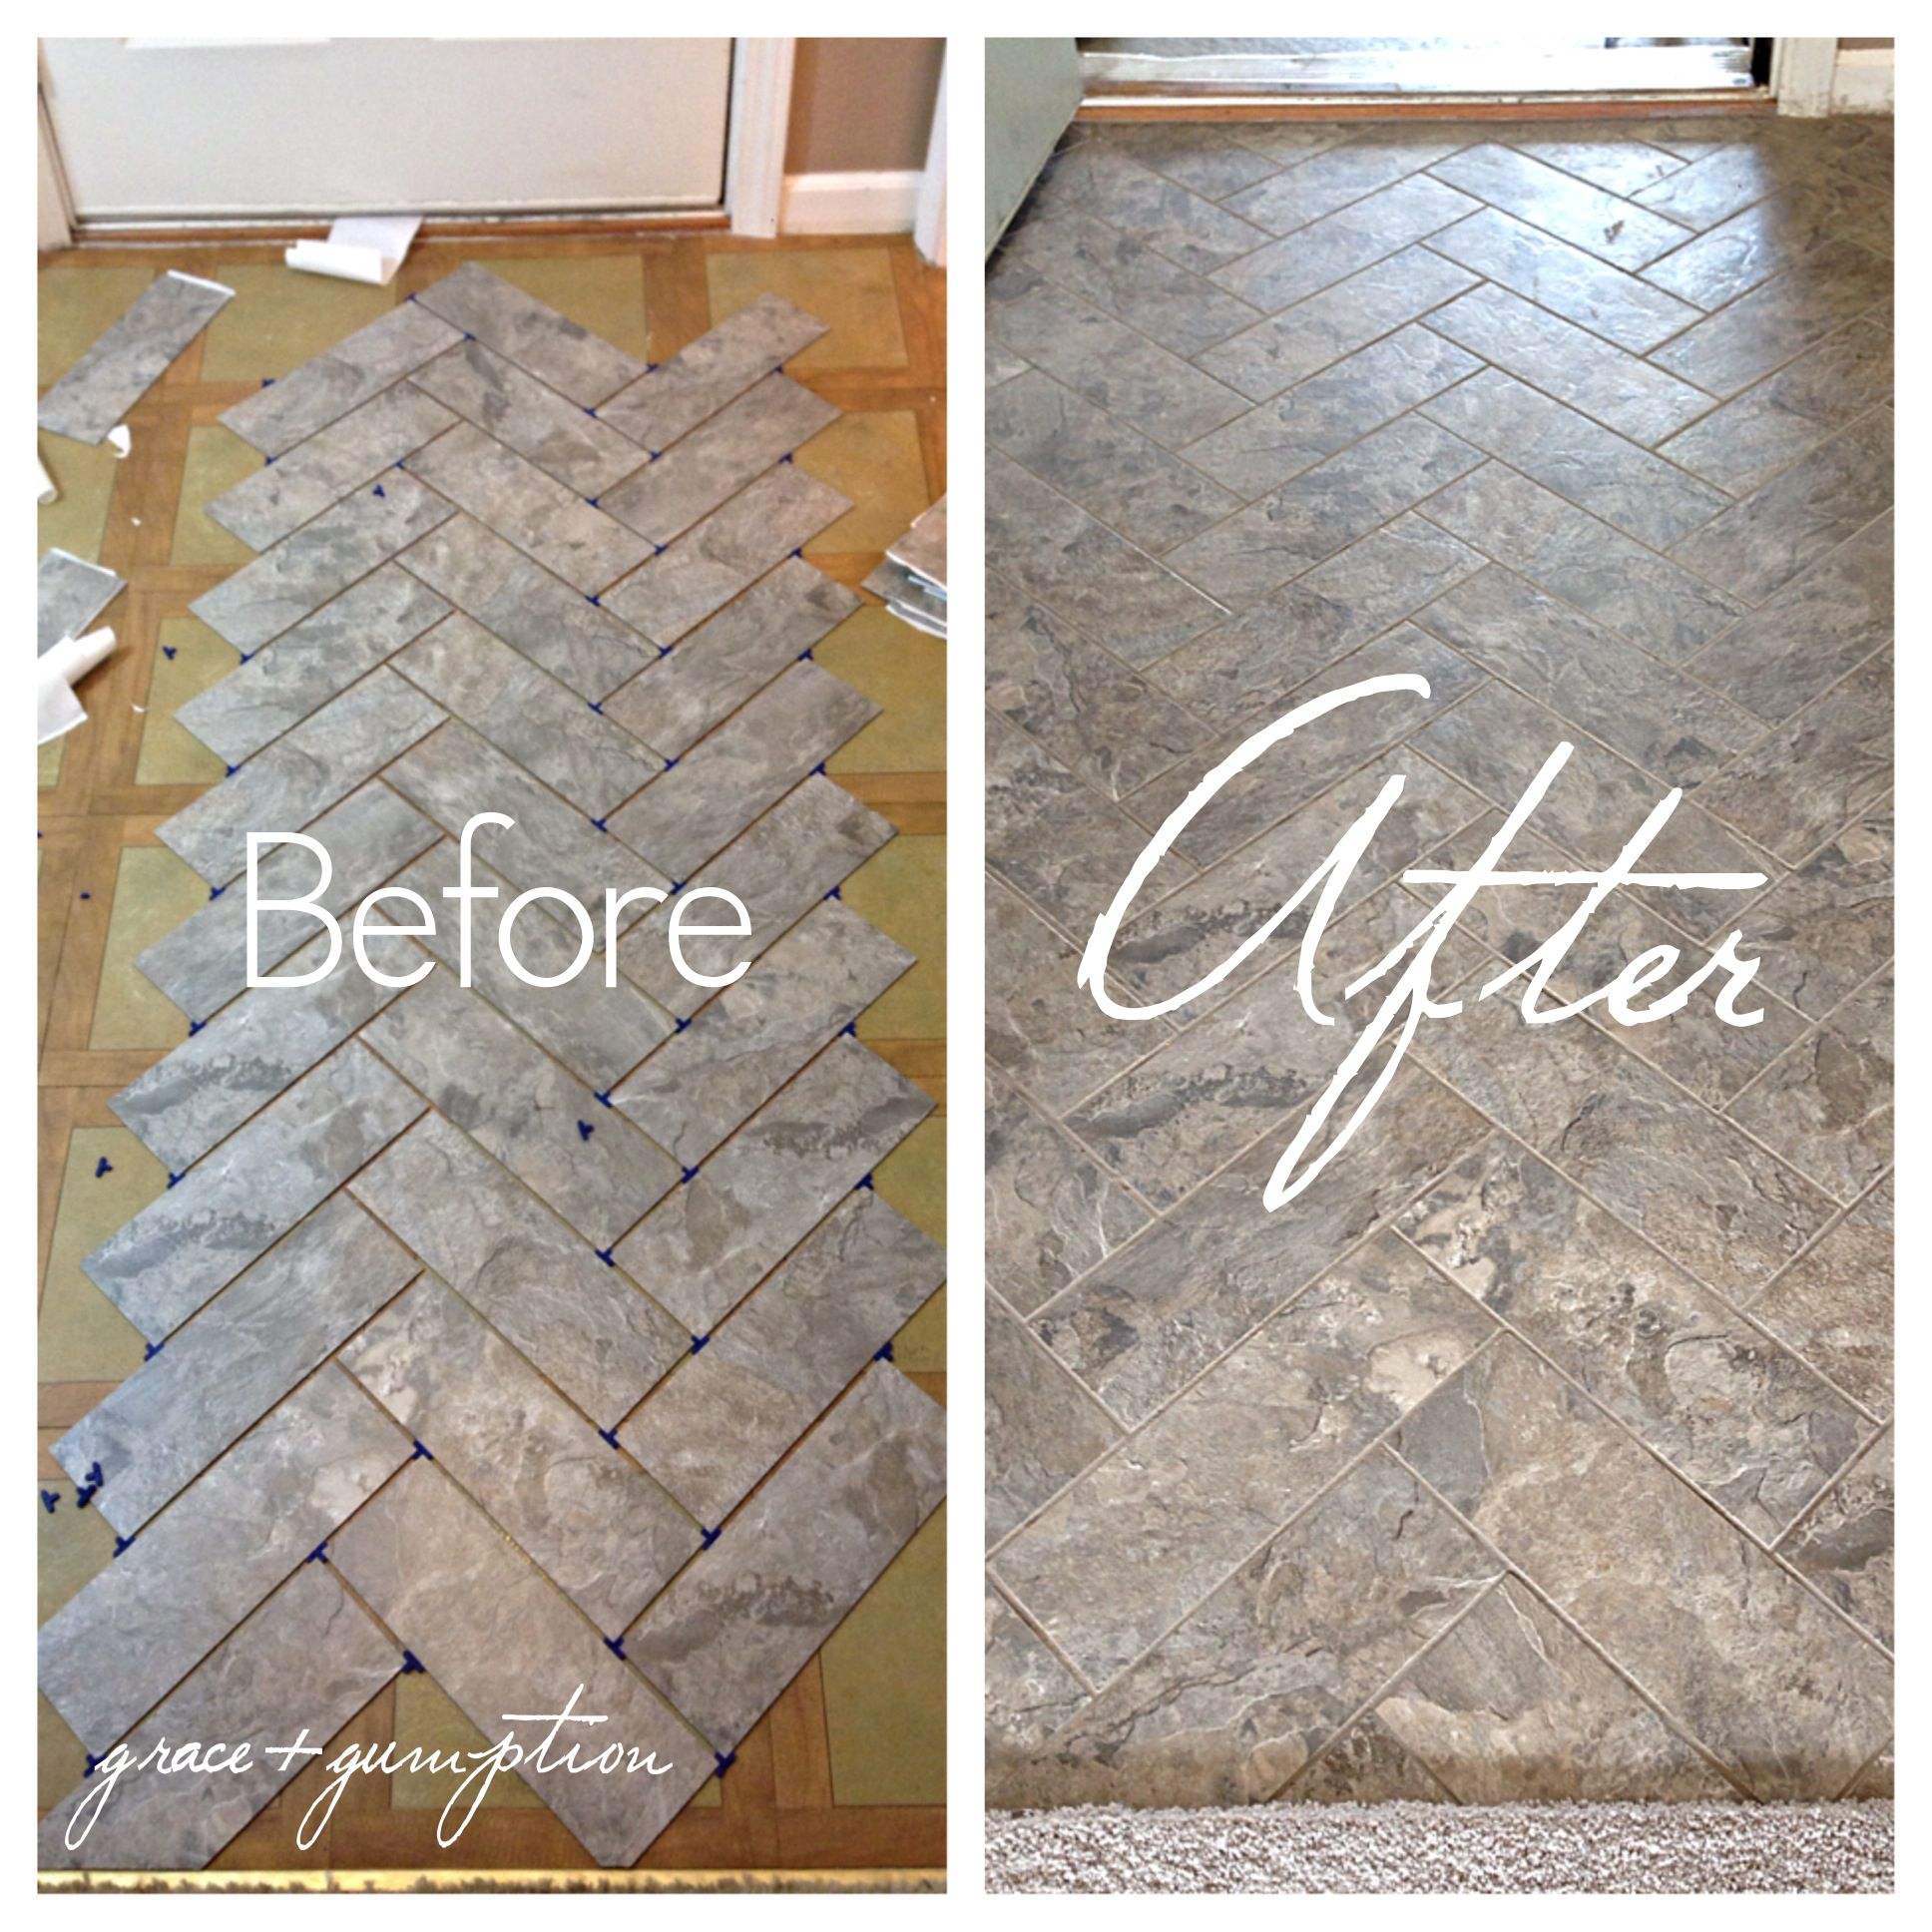 Laying Kitchen Floor Tiles Diy Herringbone Peel N Stick Tile Floor Before And After By Grace